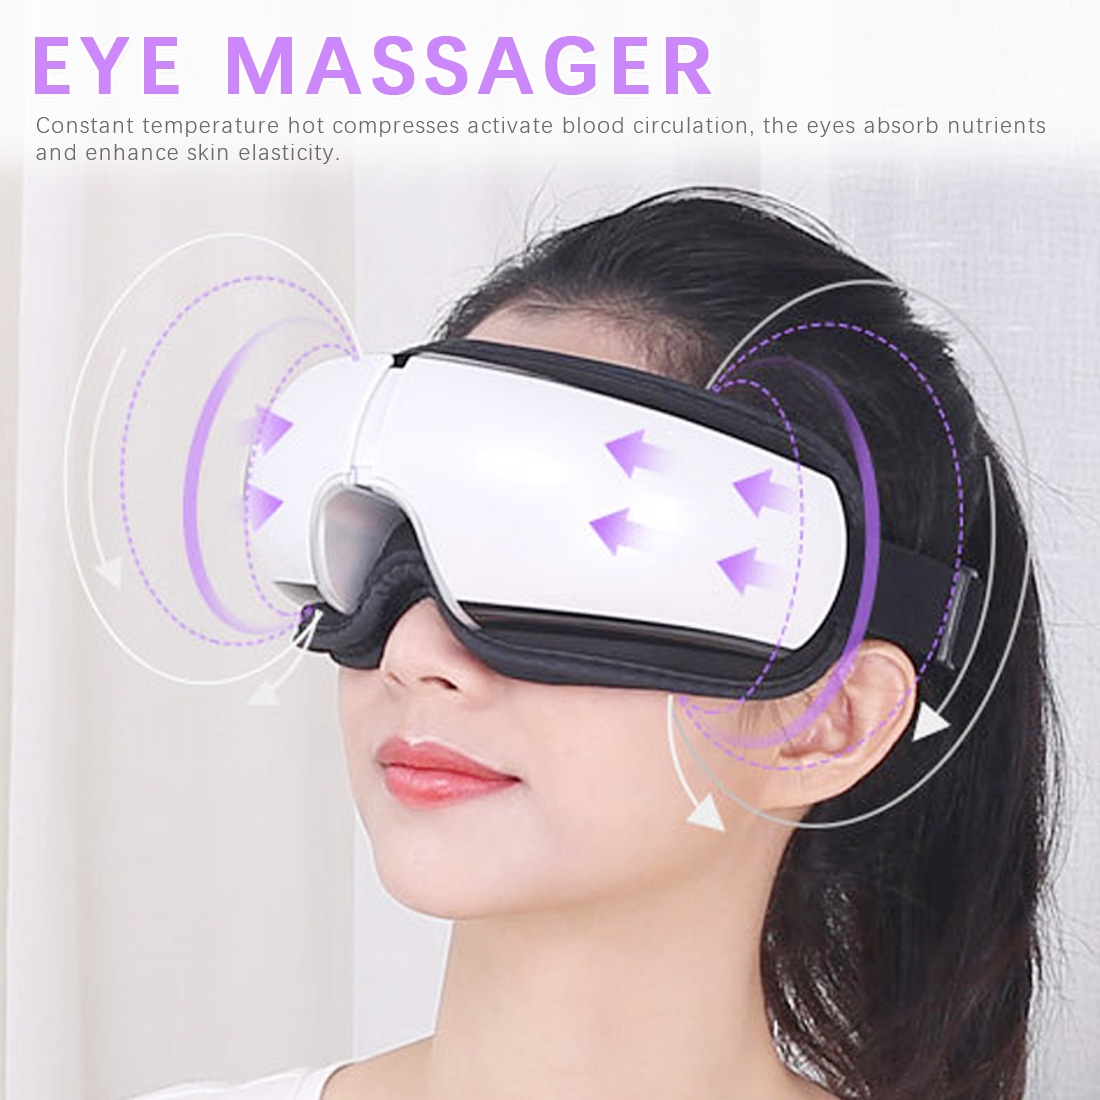 SPA Bluetooth Eyes Massager Vibration Electric Music Collapsible Air Pressure Heating Eye Care Instrument Eye Fatigue Massage